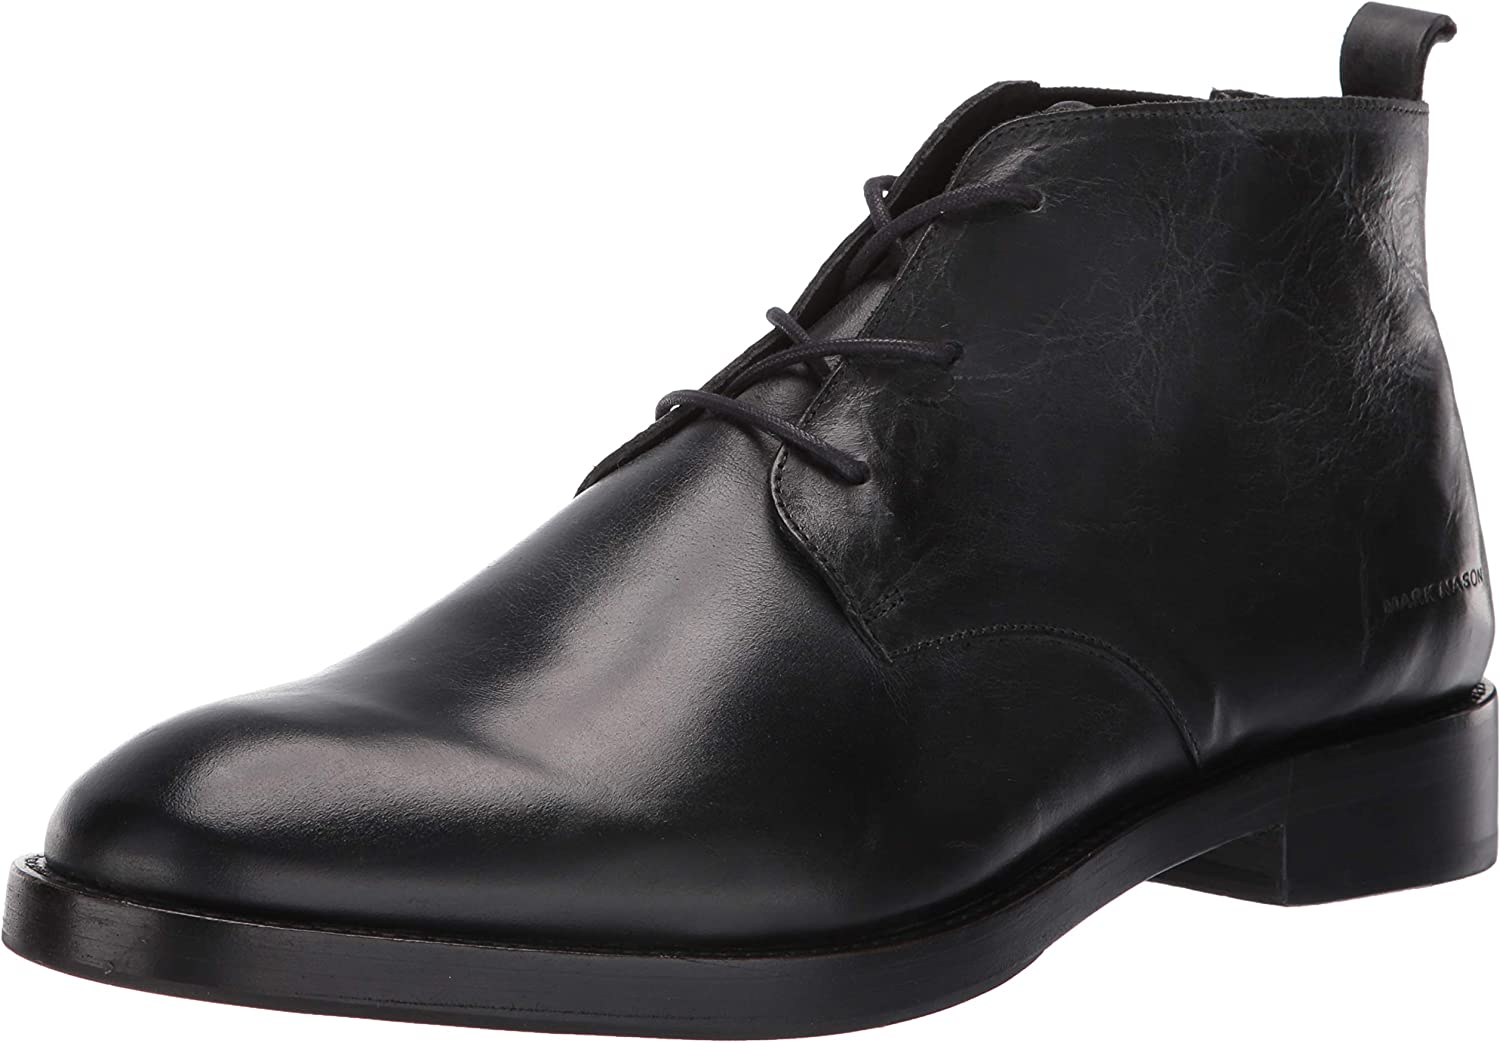 Mark Nason Men's Boot All stores are sold Max 76% OFF Eastwood Fashion